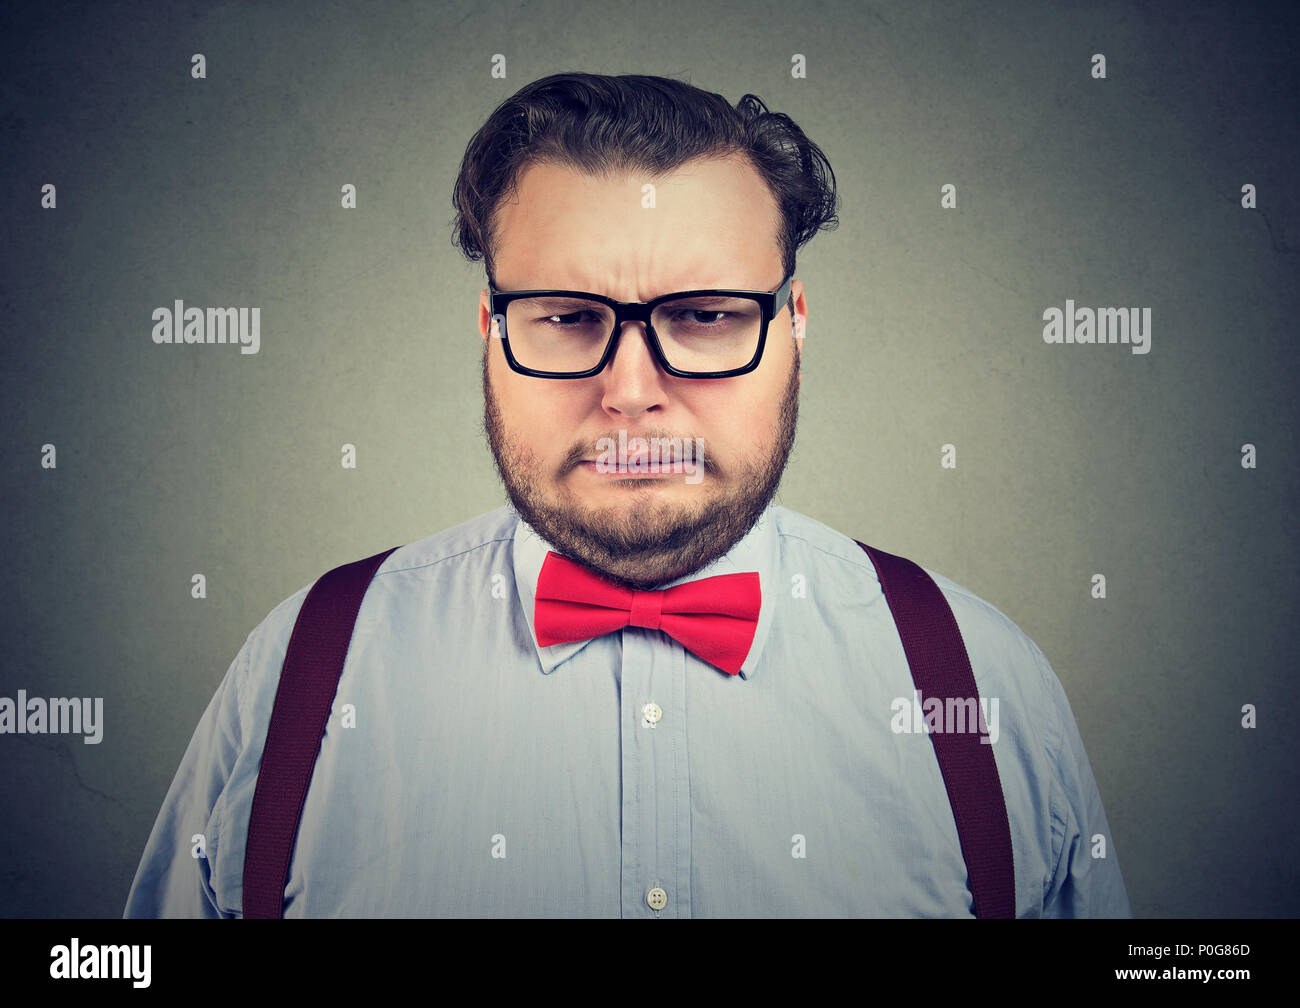 Overweight formal man wearing glasses and making complaining expression of face looking at camera on gray - Stock Image